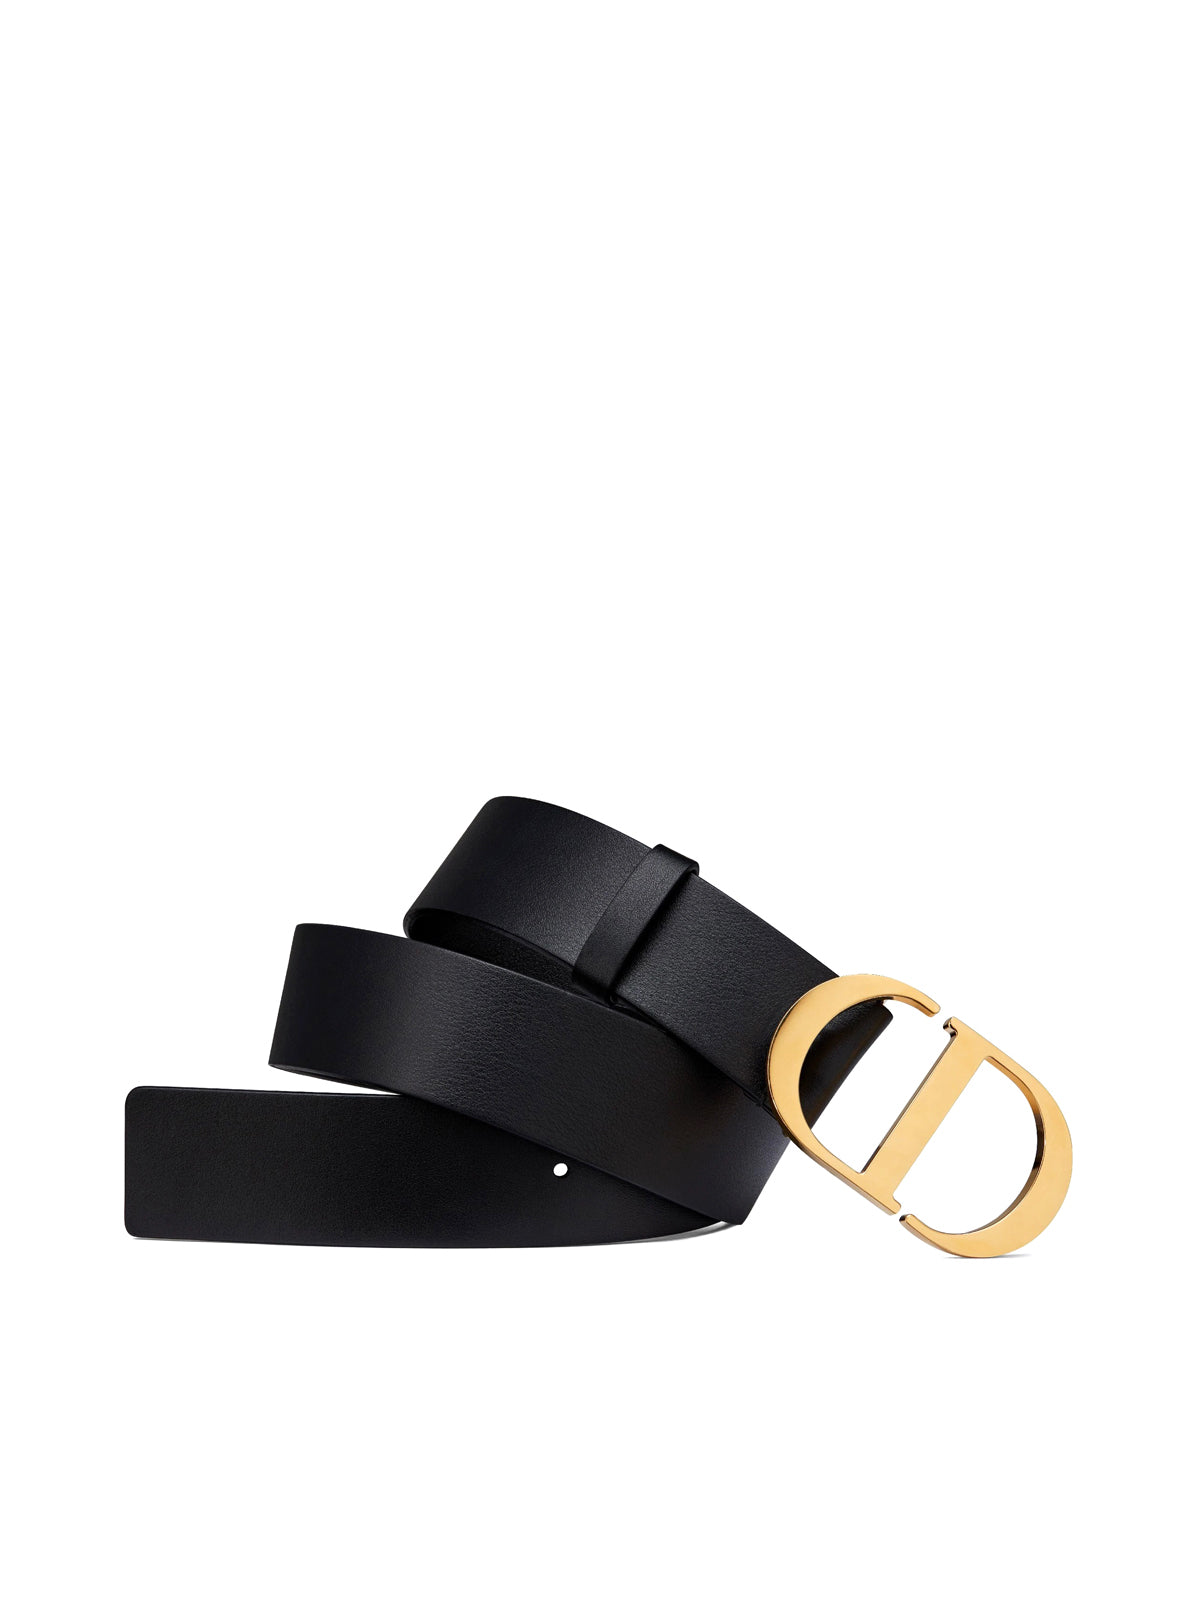 30 MONTAIGNE BELT